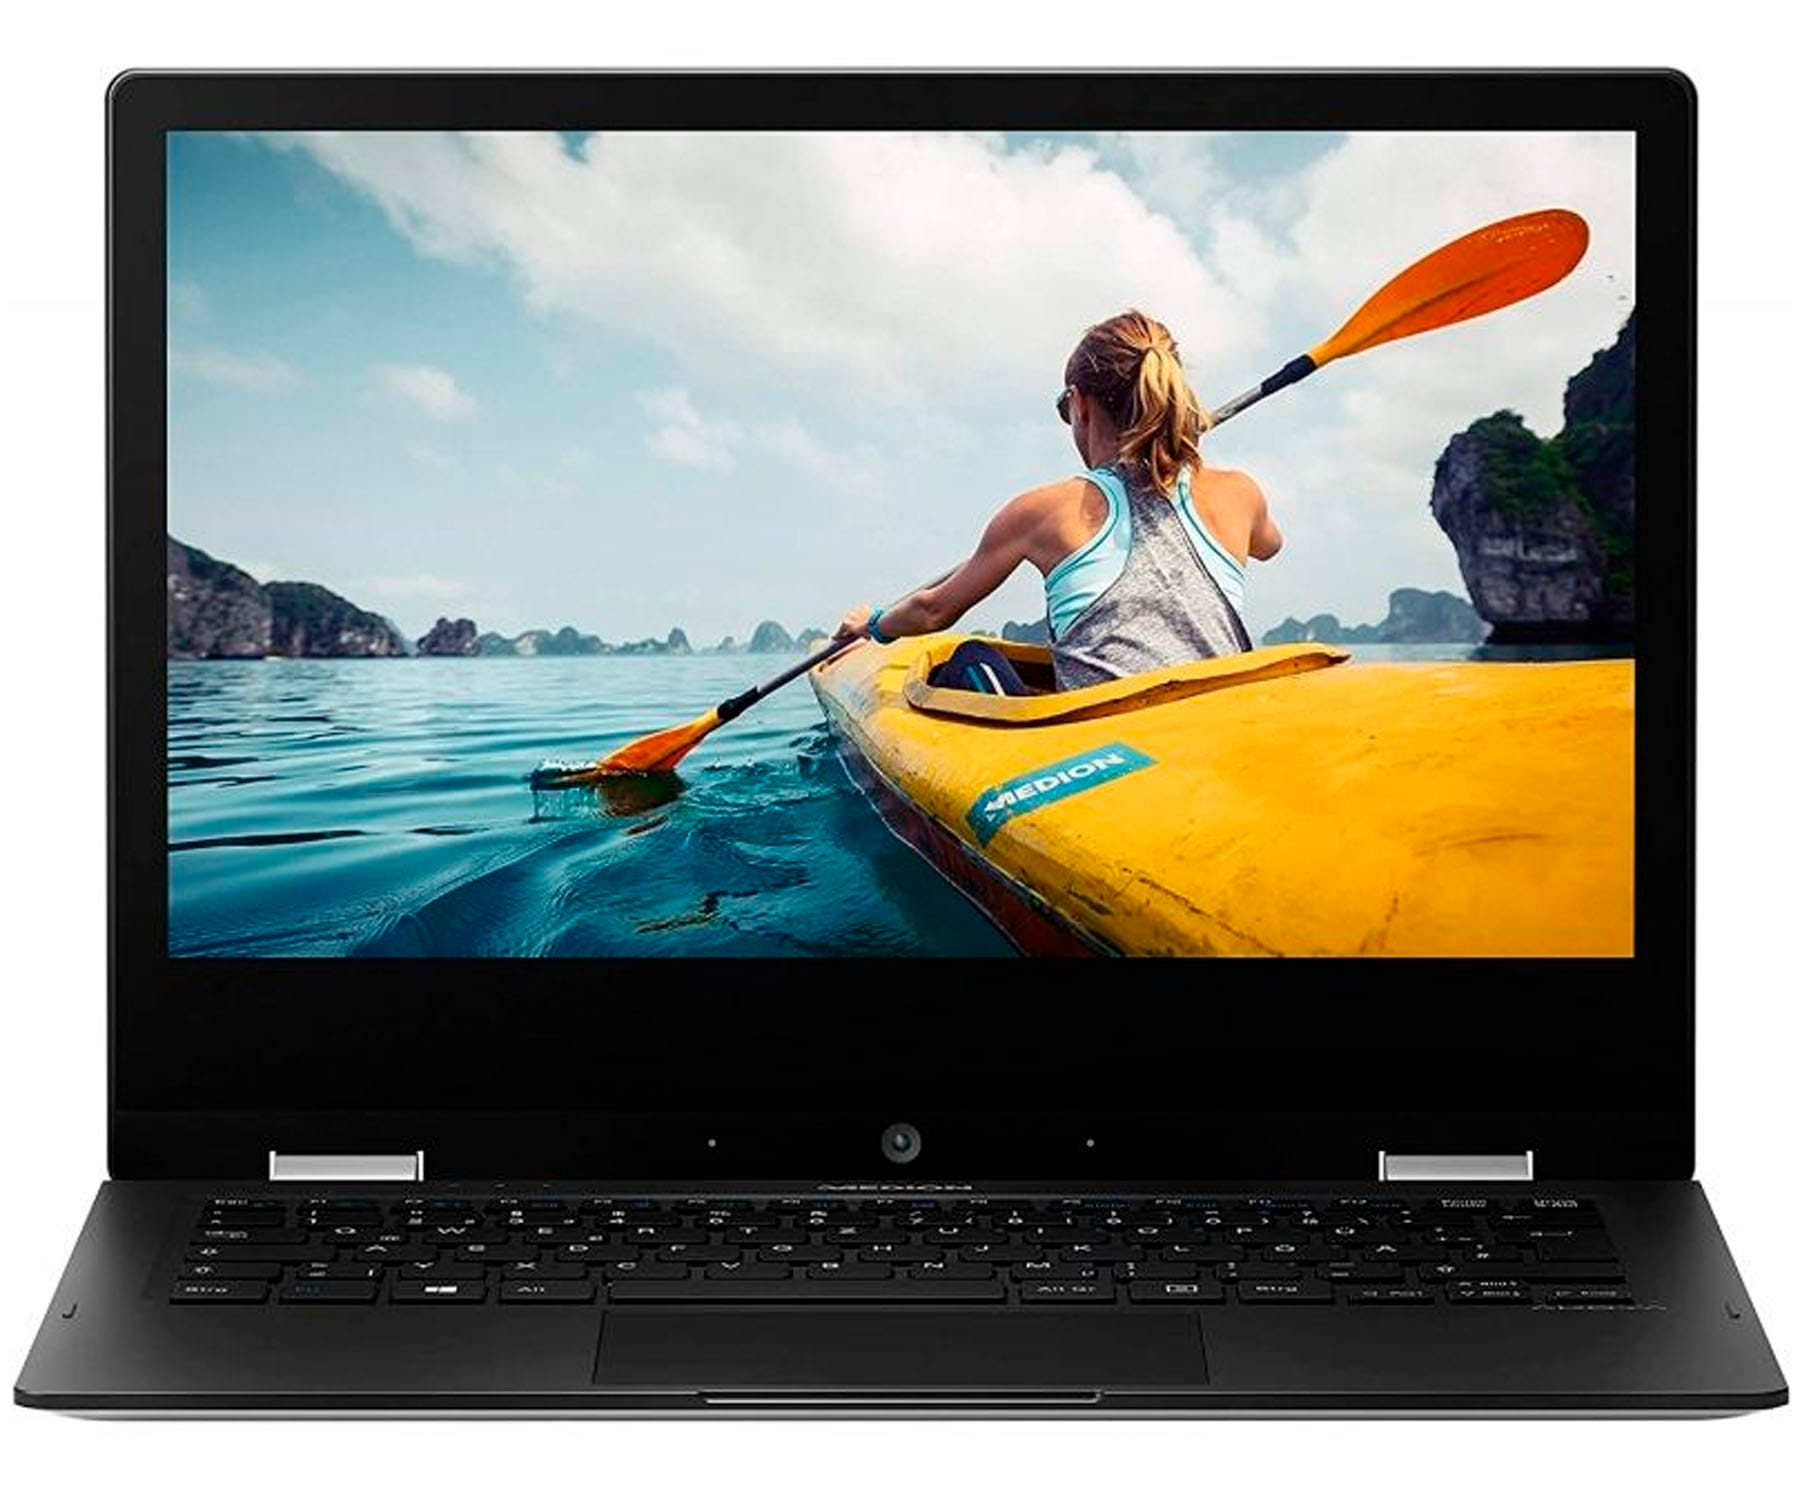 MEDION E2291 MD62001 PLATA PORTÁTIL CONVERTIBLE 11,6'' TÁCTIL 360º FullHD CEL-N4020 64GB 4GB RAM WINDOWS 10 HOME